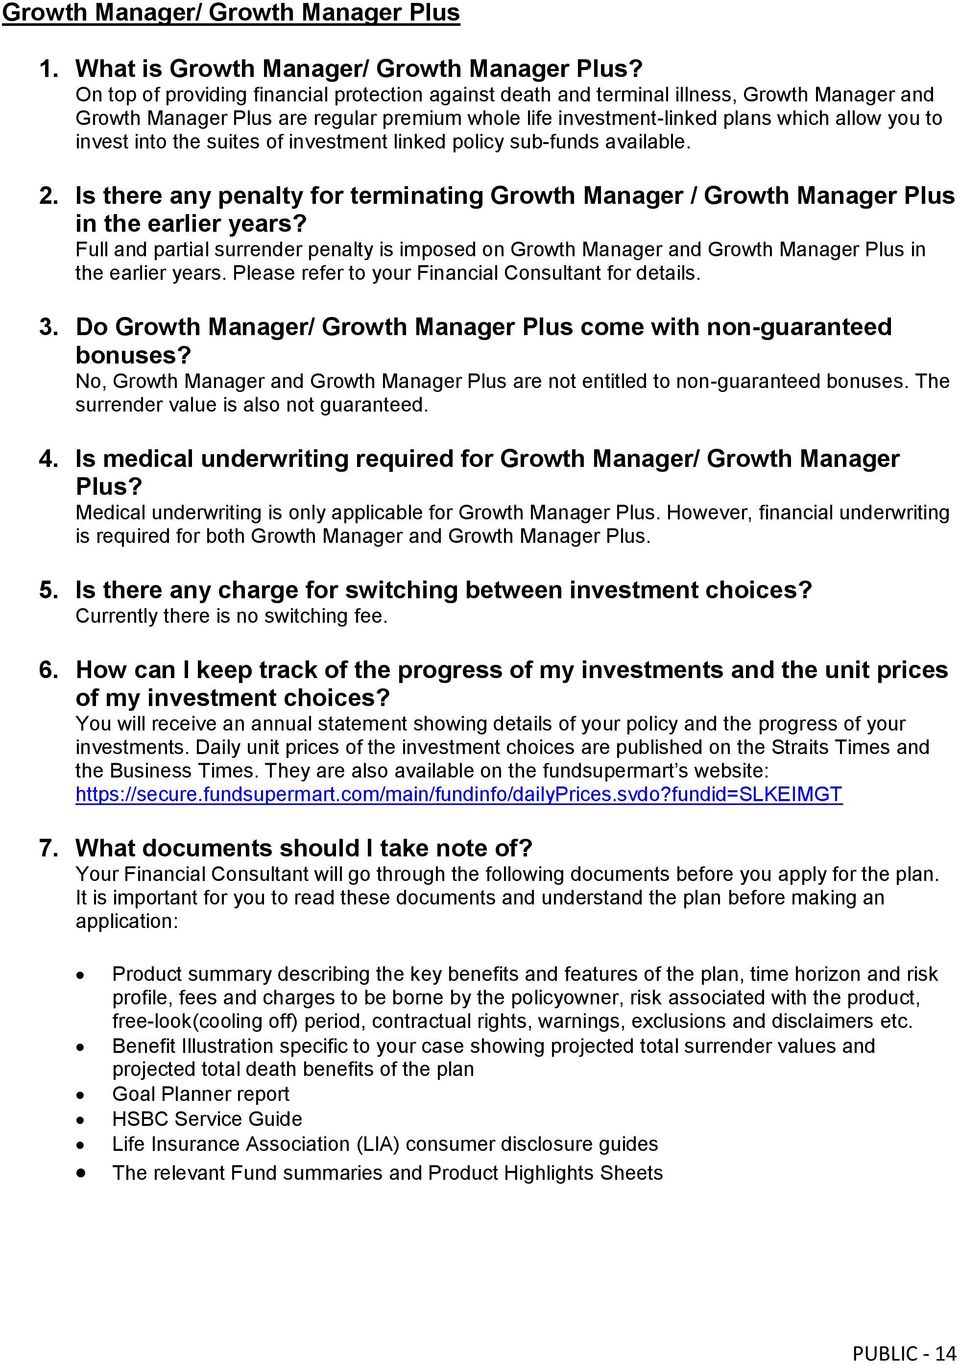 into the suites of investment linked policy sub-funds available. 2. Is there any penalty for terminating Growth Manager / Growth Manager Plus in the earlier years?